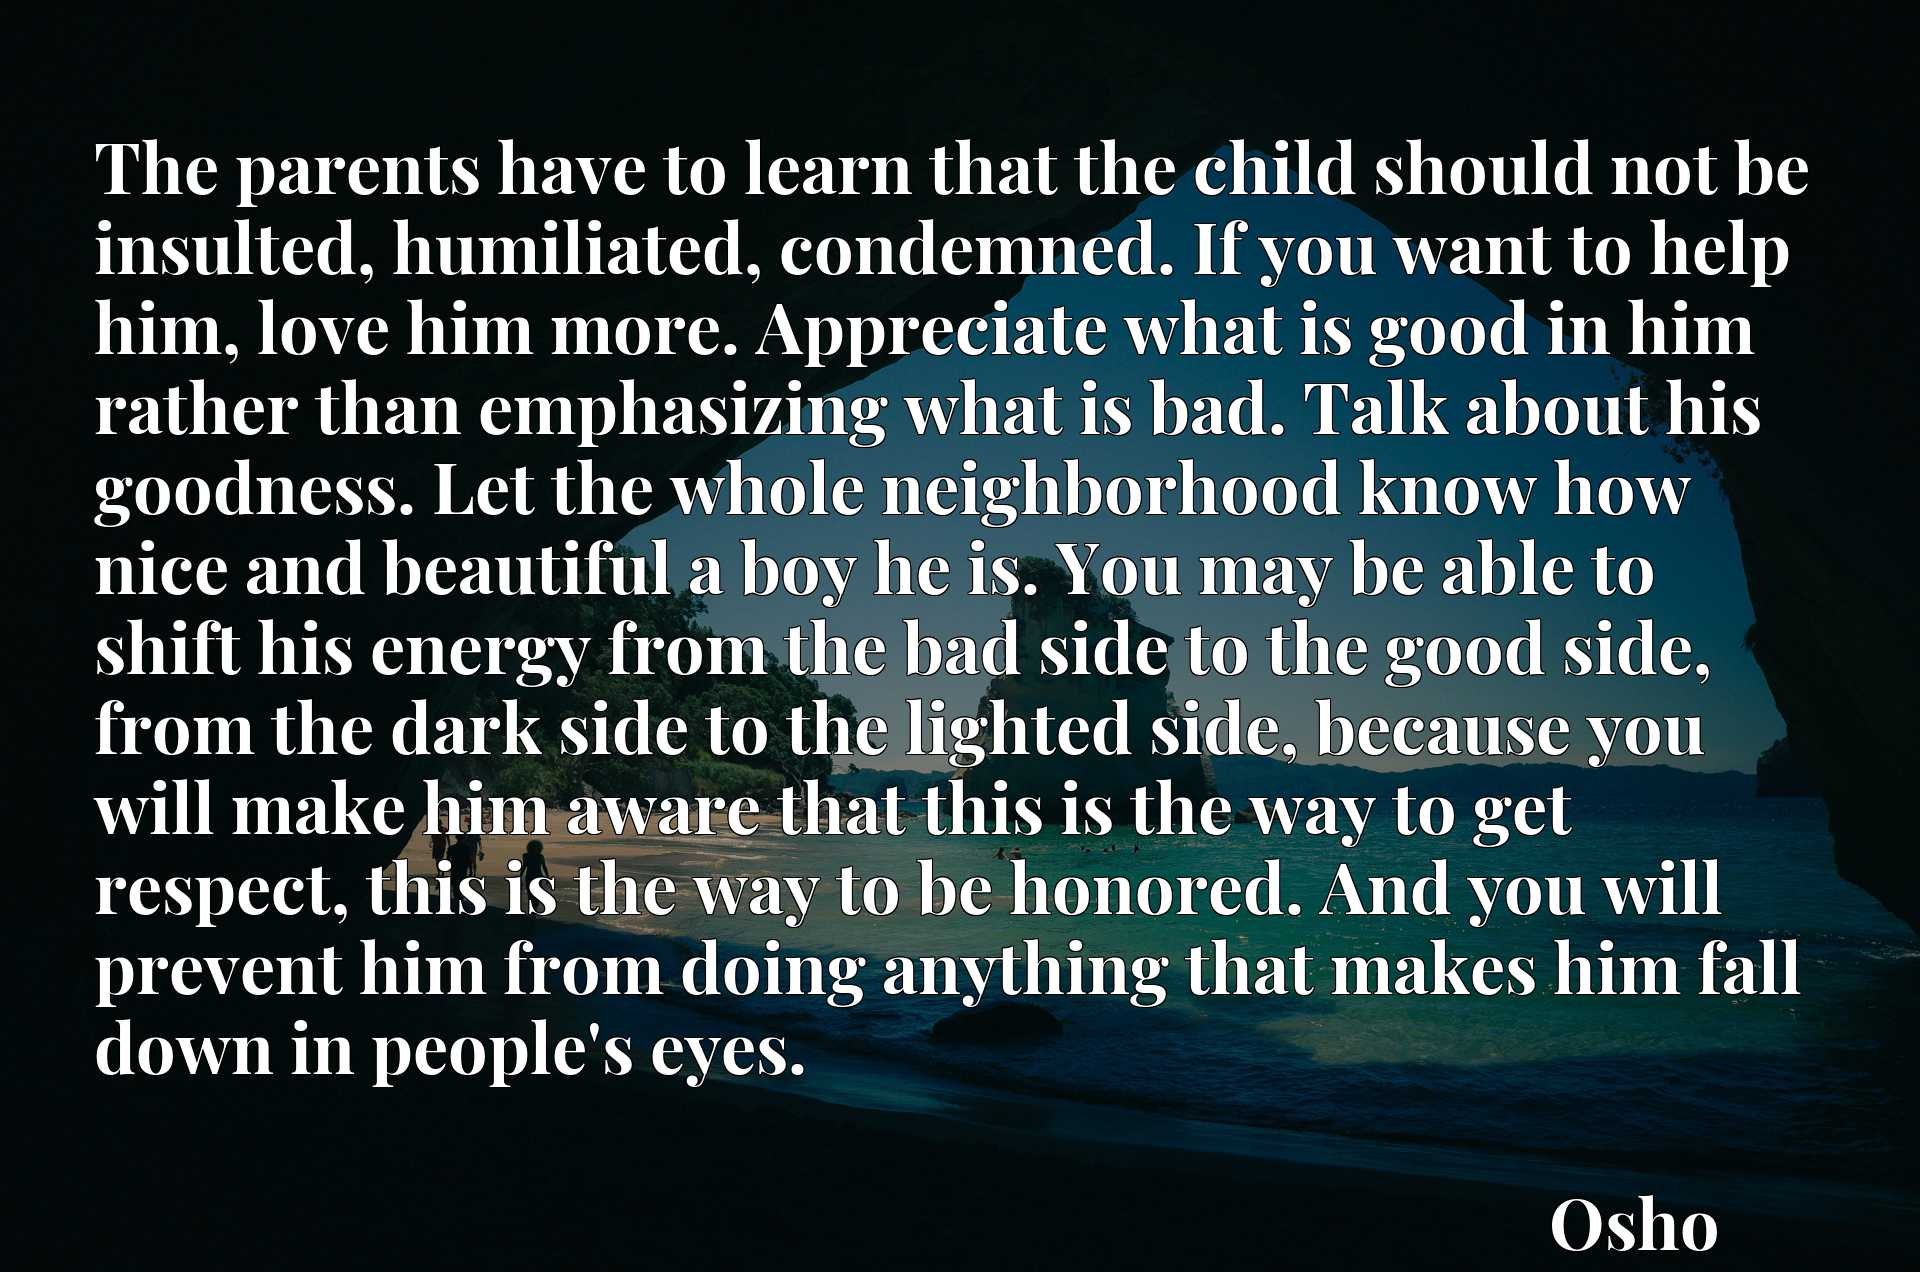 The parents have to learn that the child should not be insulted, humiliated, condemned. If you want to help him, love him more. Appreciate what is good in him rather than emphasizing what is bad. Talk about his goodness. Let the whole neighborhood know how nice and beautiful a boy he is. You may be able to shift his energy from the bad side to the good side, from the dark side to the lighted side, because you will make him aware that this is the way to get respect, this is the way to be honored. And you will prevent him from doing anything that makes him fall down in people's eyes.